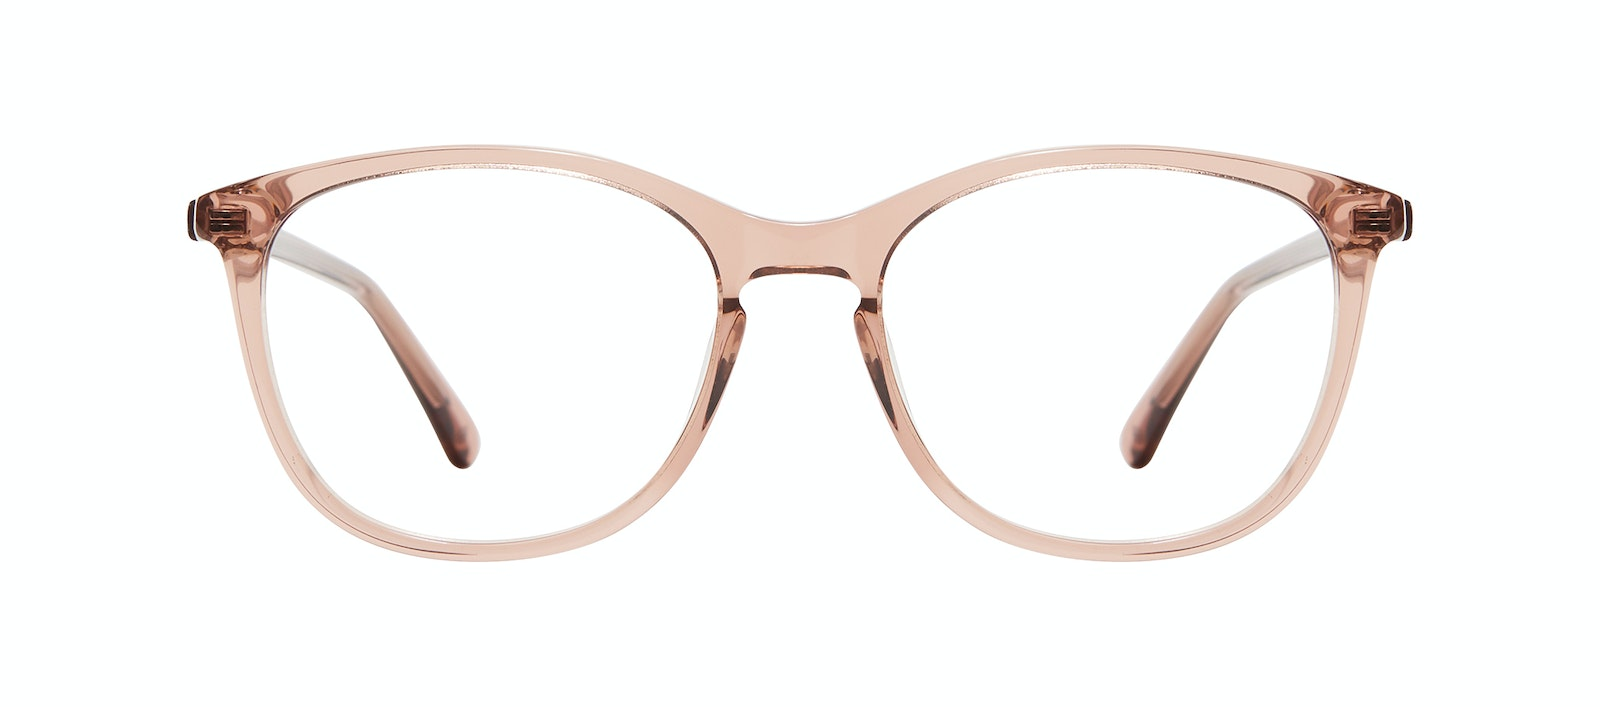 Affordable Fashion Glasses Rectangle Square Round Eyeglasses Women Nadine M Rose Front